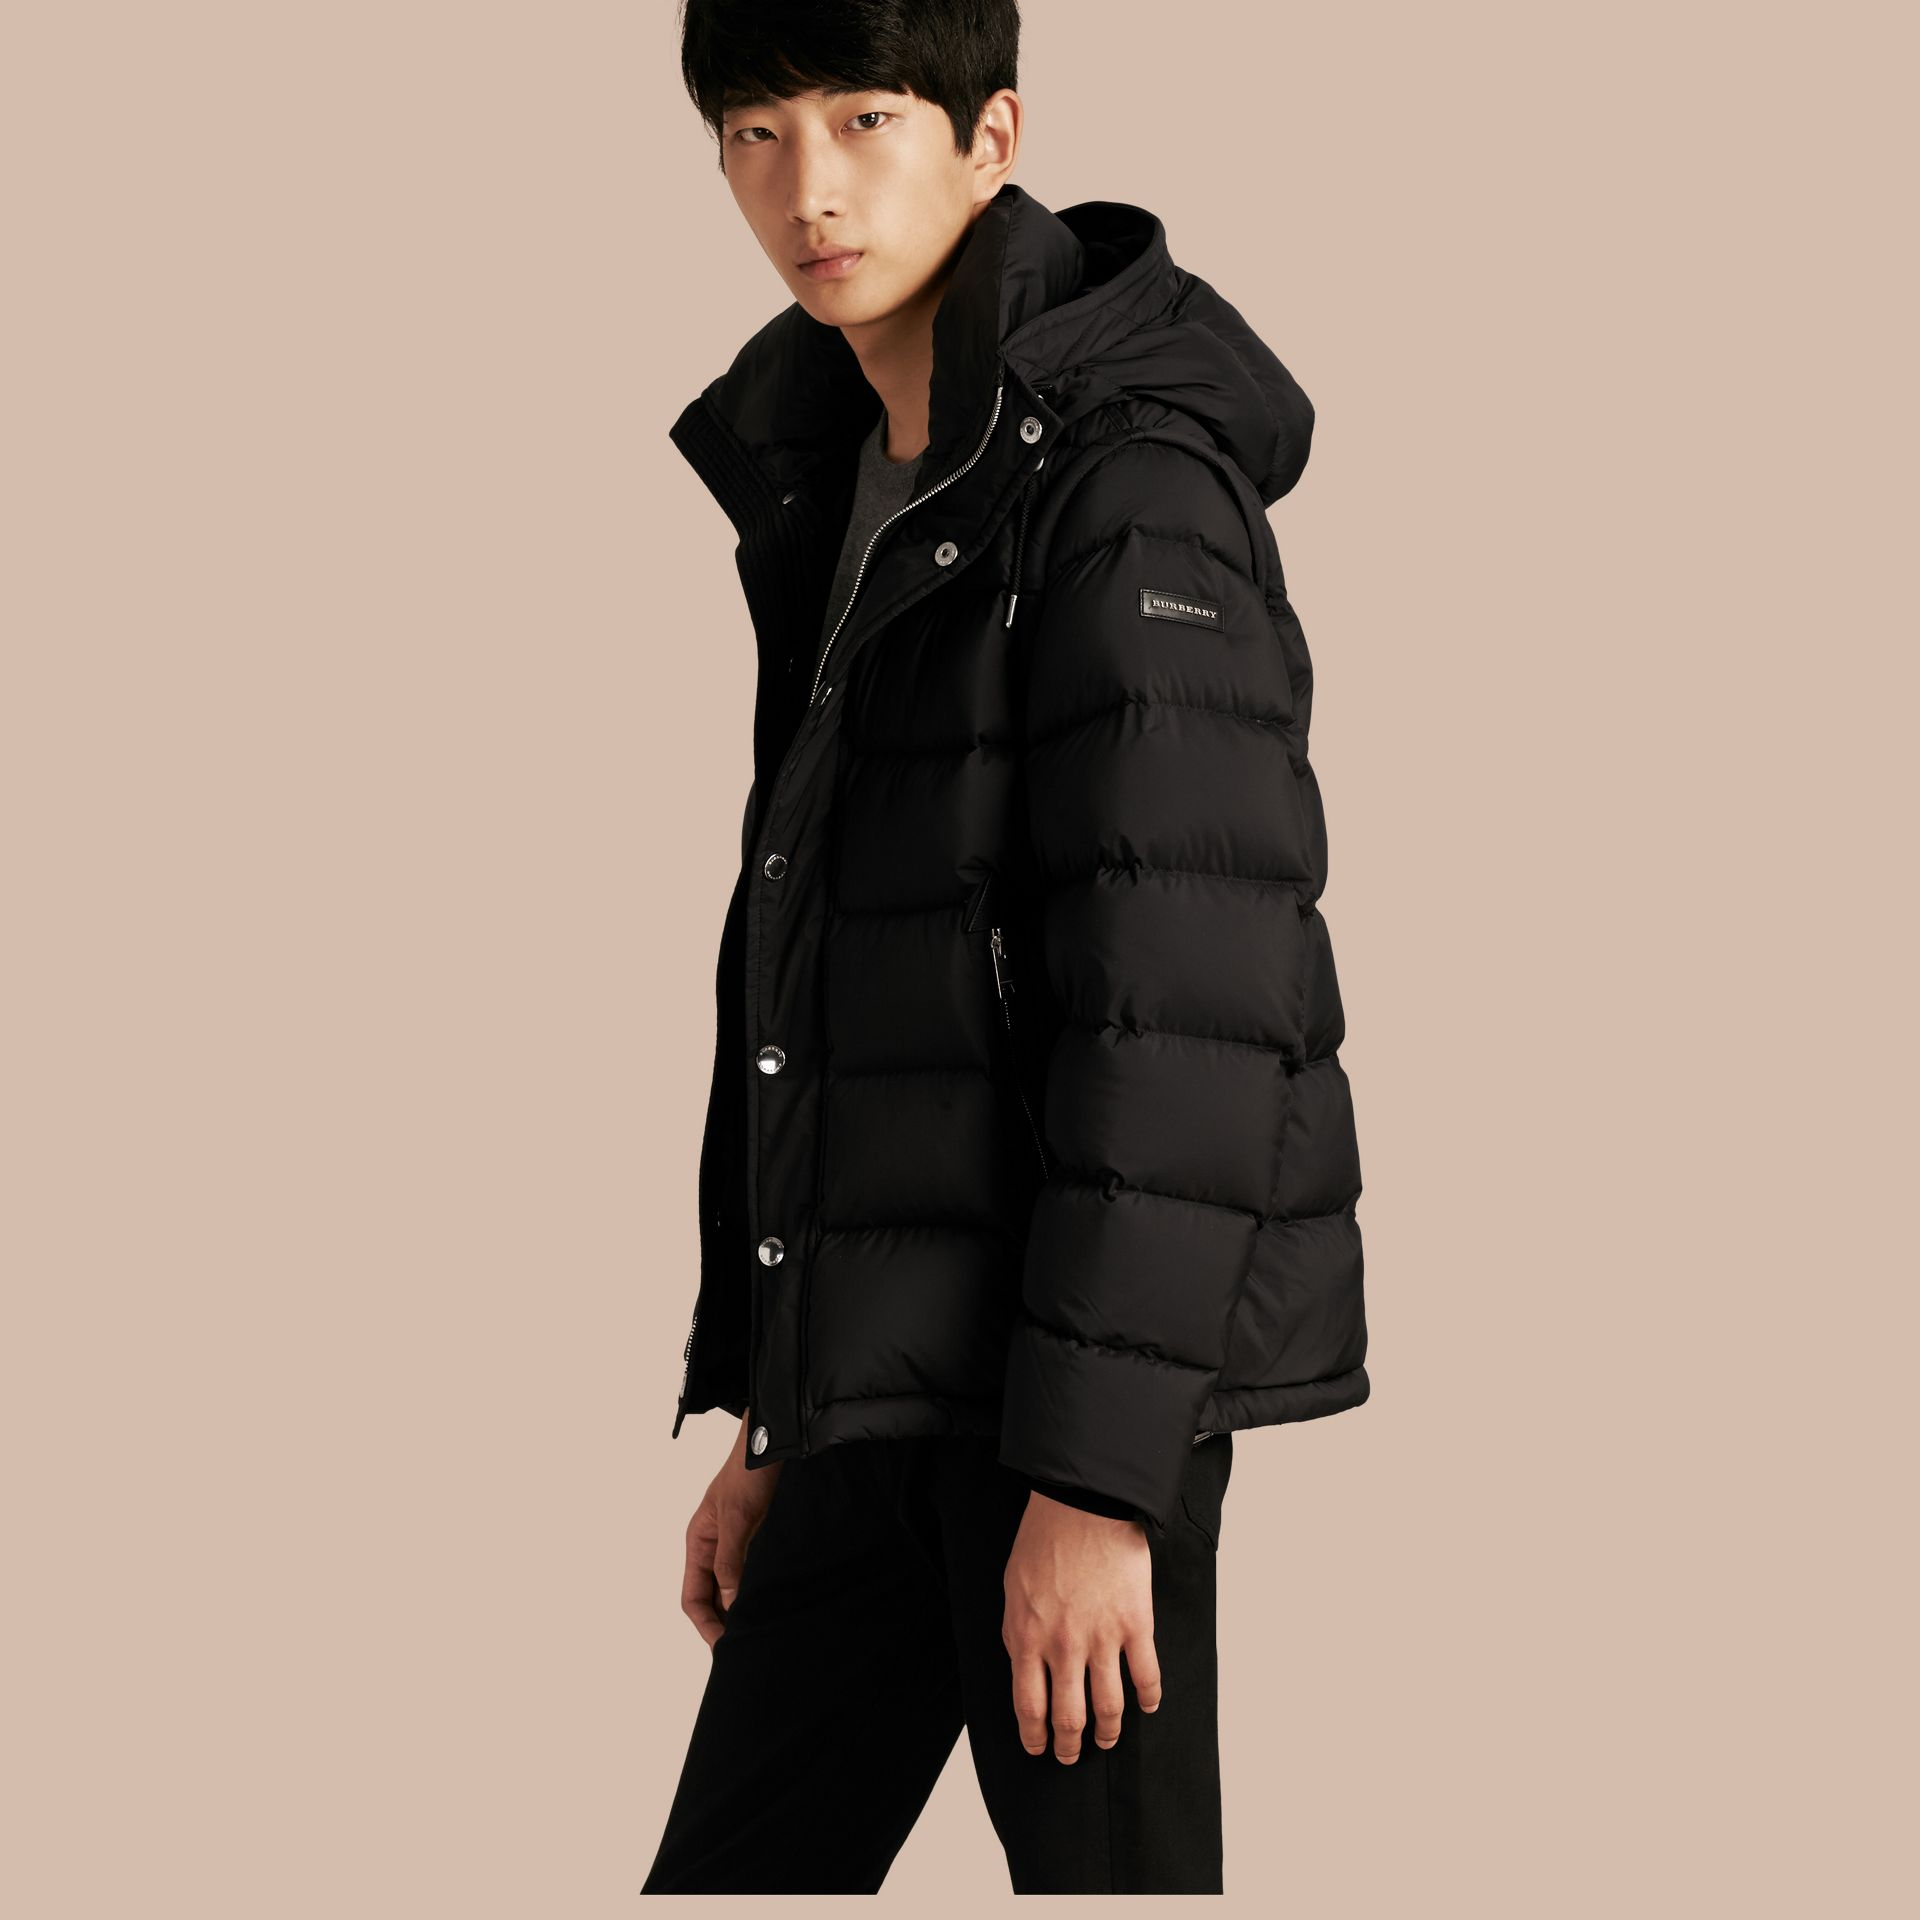 Black Down-filled Hooded Jacket with Detachable Sleeves Black - gallery image 1